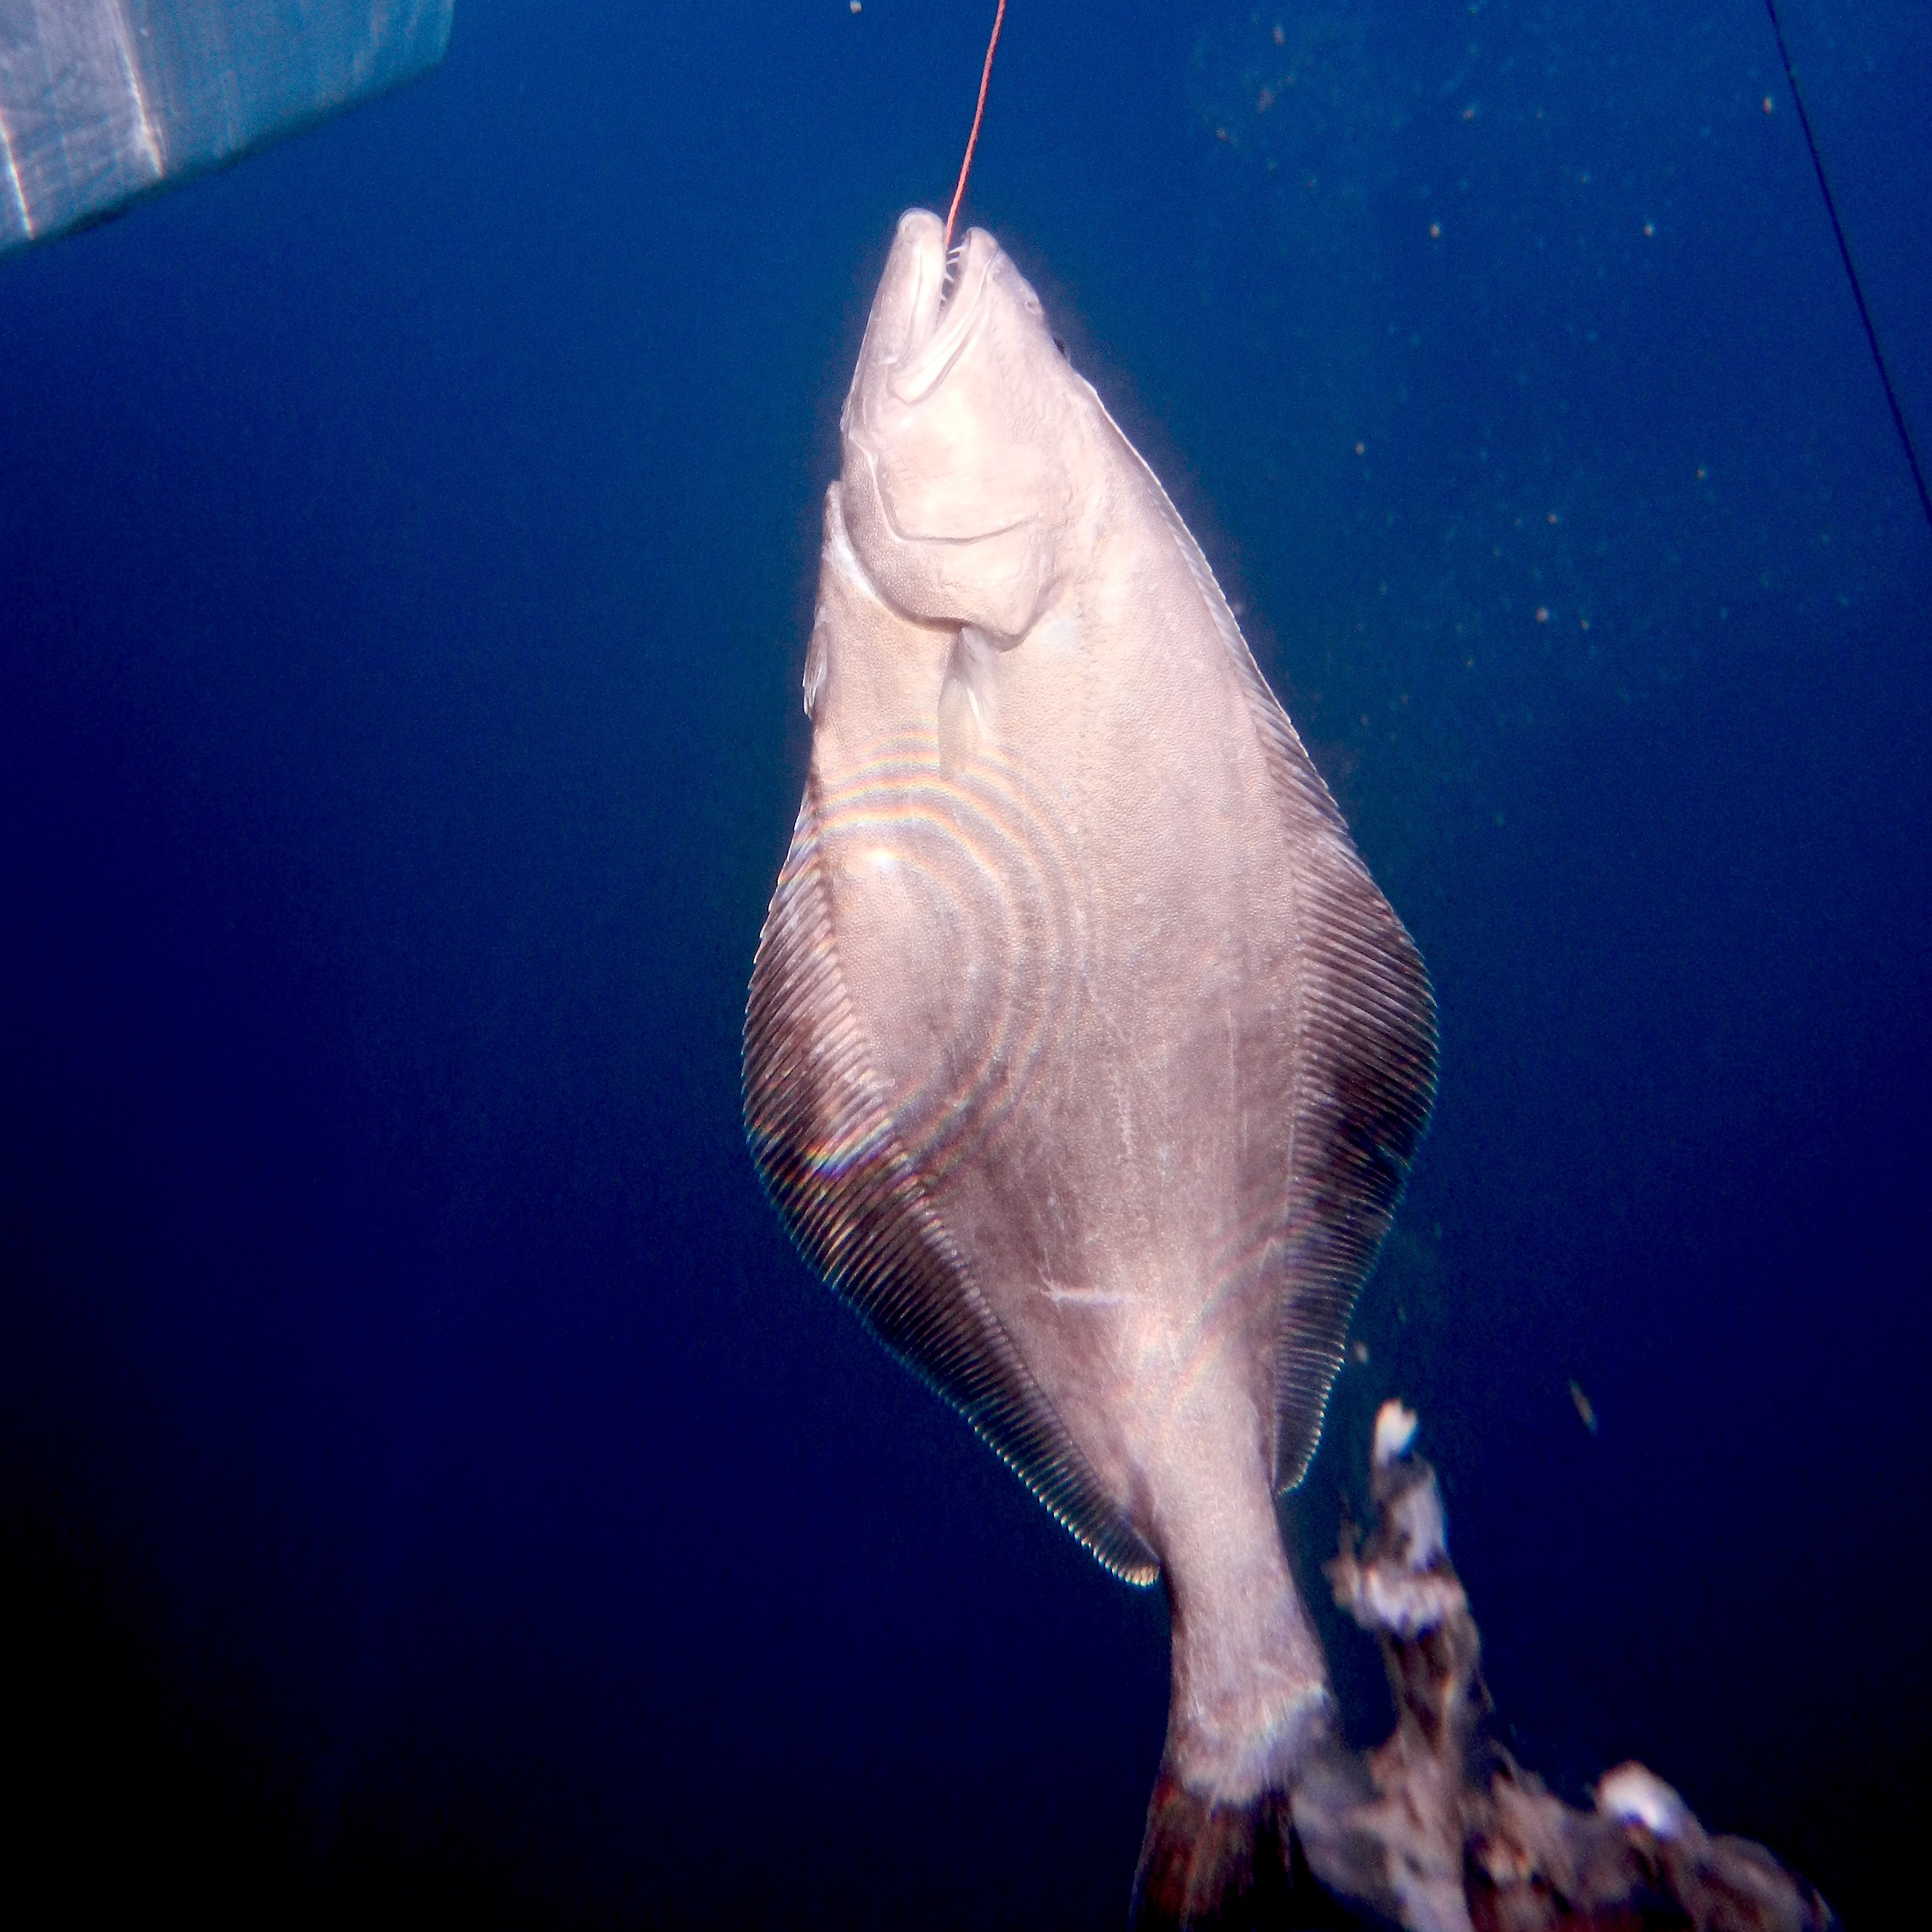 A halibut is seen on the line of a fisherman in Ilulissat, Greenland.